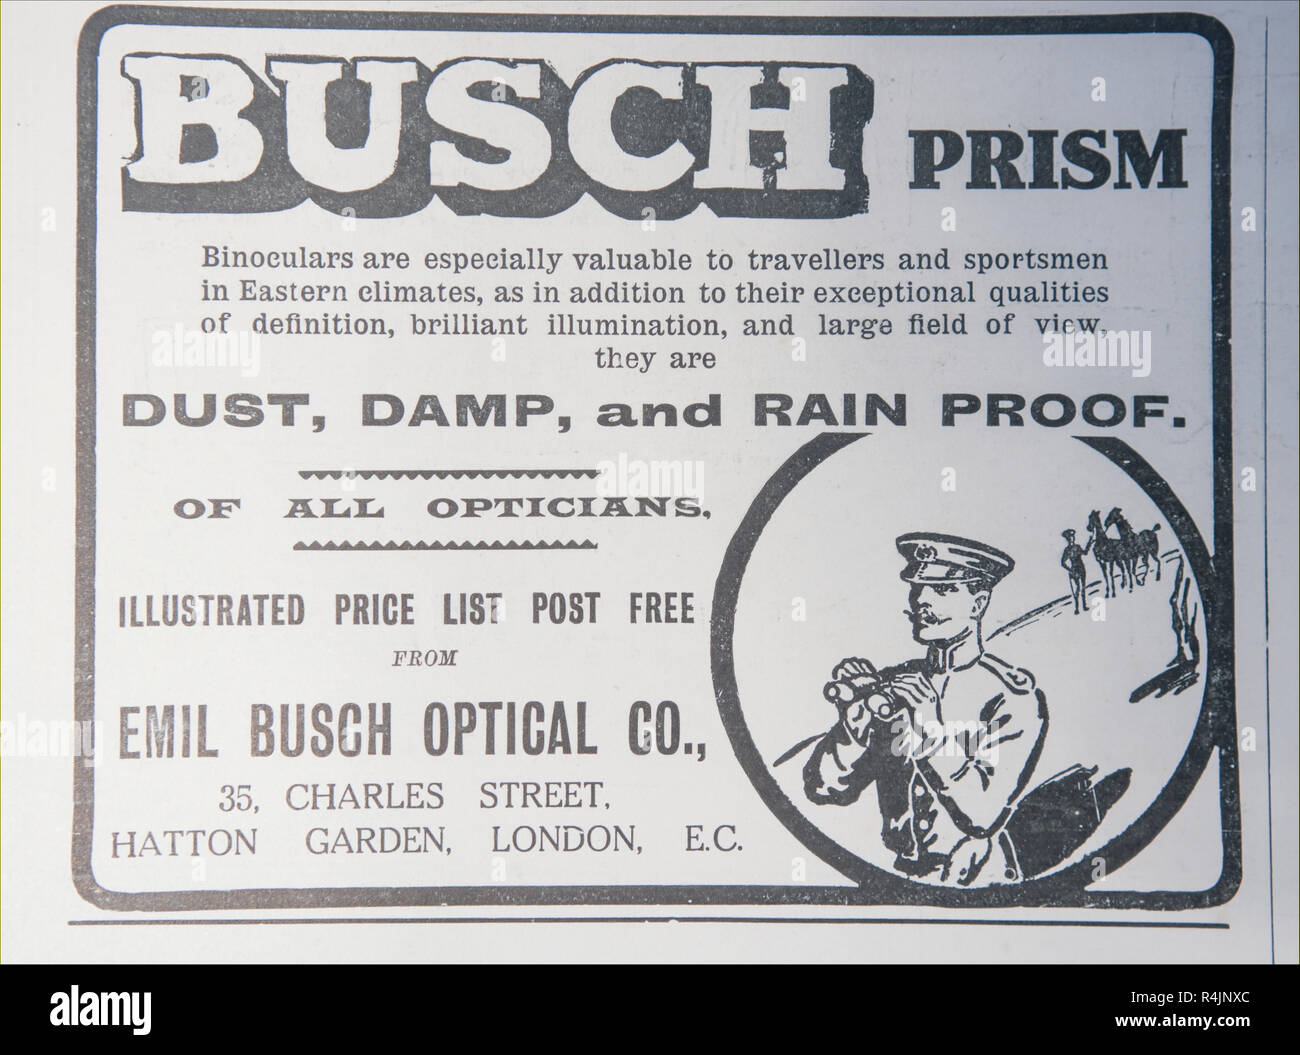 An old advert for Busch Prism binoculars. From an old British magazine from the 1914-1918 period. - Stock Image